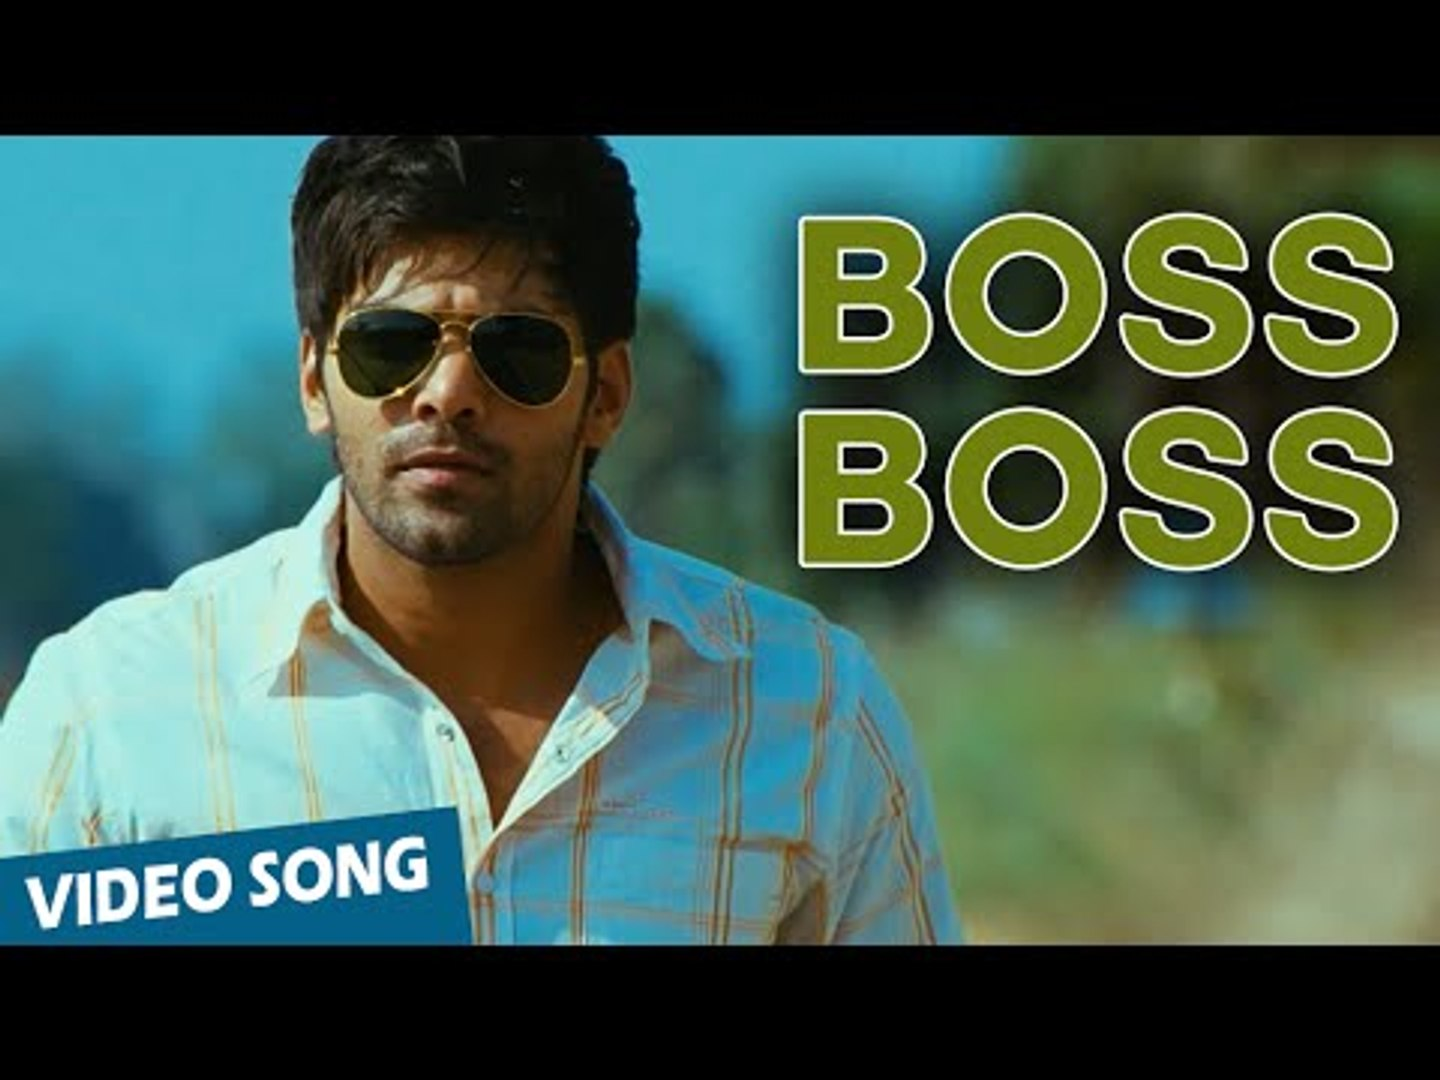 Boss Boss Official Video Song | Boss (a) Baskaran | Arya | Nayantara | Yuvan Shankar Raja